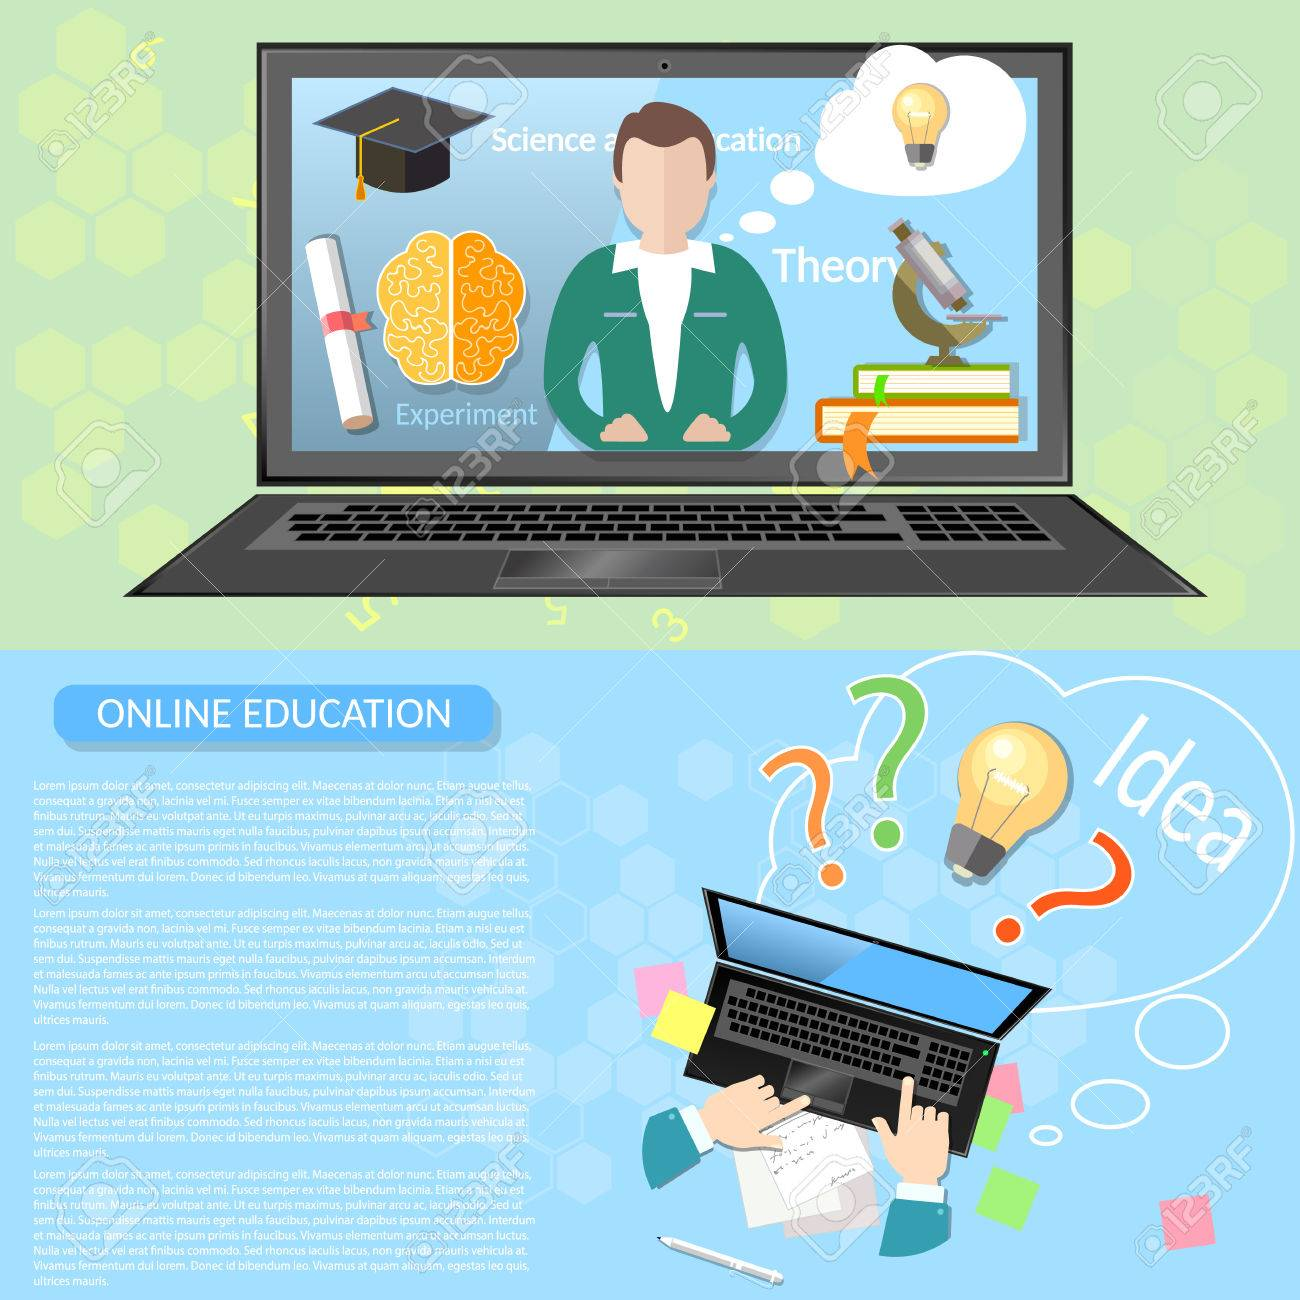 Online Education Distance Learning Student University Virtual Royalty Free Cliparts Vectors And Stock Illustration Image 47494317